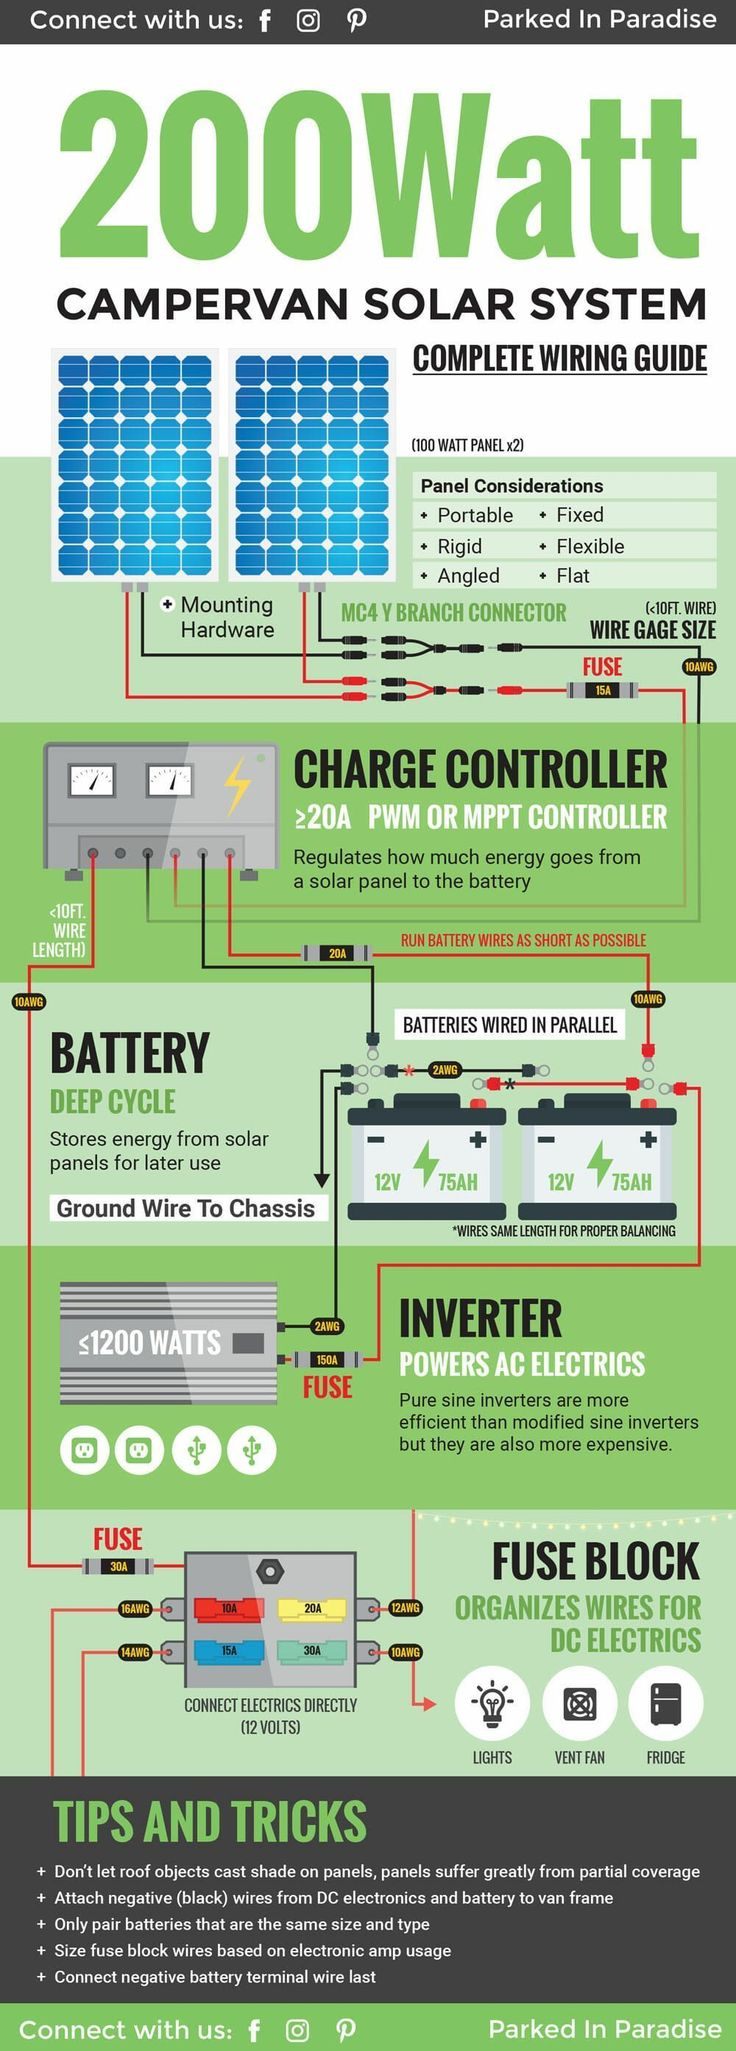 Vw Jetta Fuse Box Diagram Wallpaper Coc Just Another Wiring 04 Images Gallery